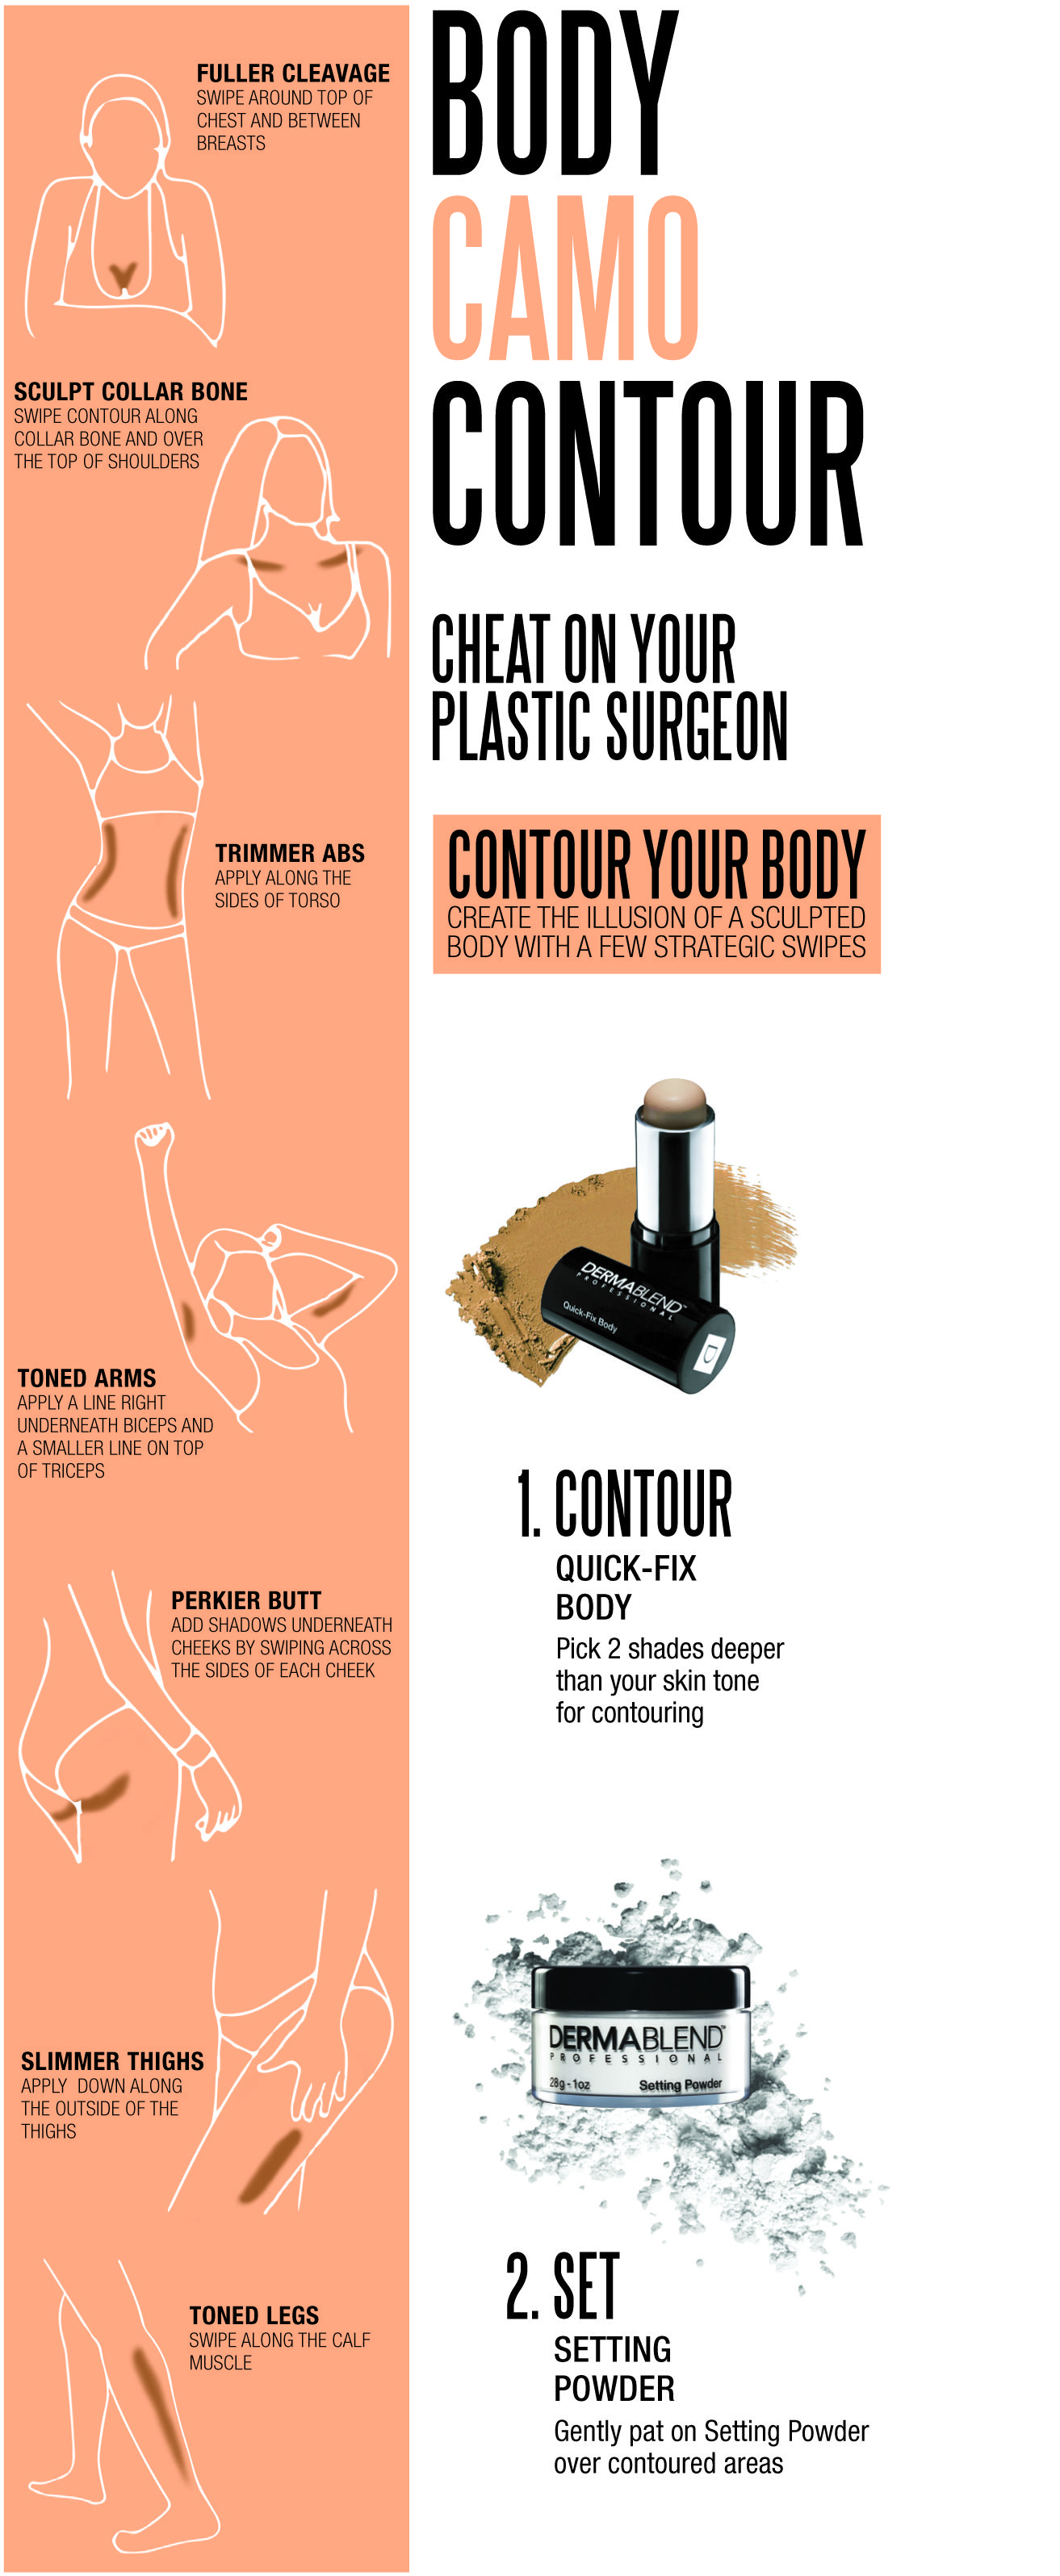 Contour and sculpt the body with just a few stratetigic